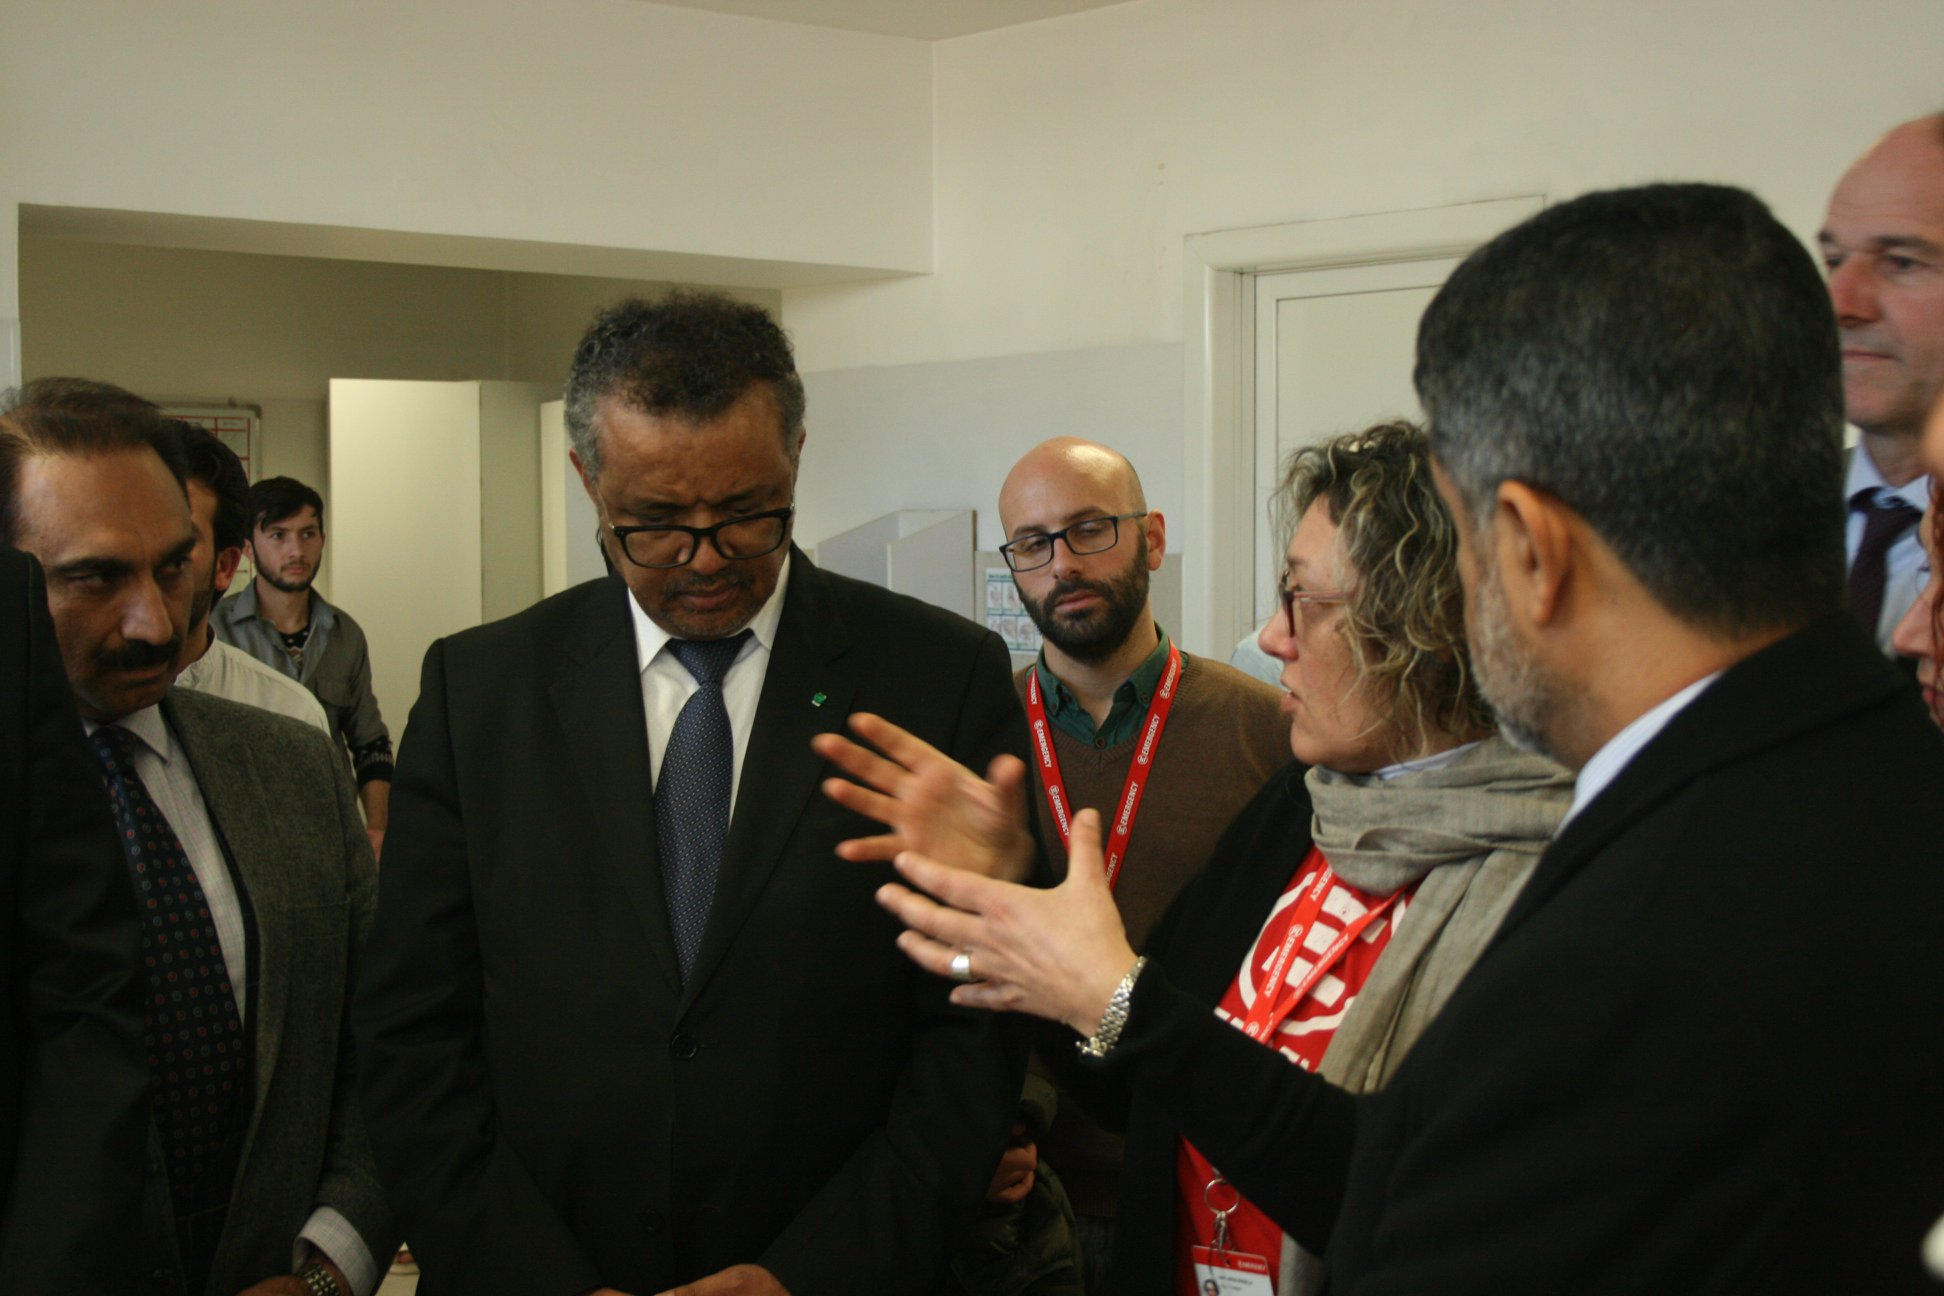 Afghanistan: WHO Director-General Visits The Surgical Centre For War Victims In Kabul